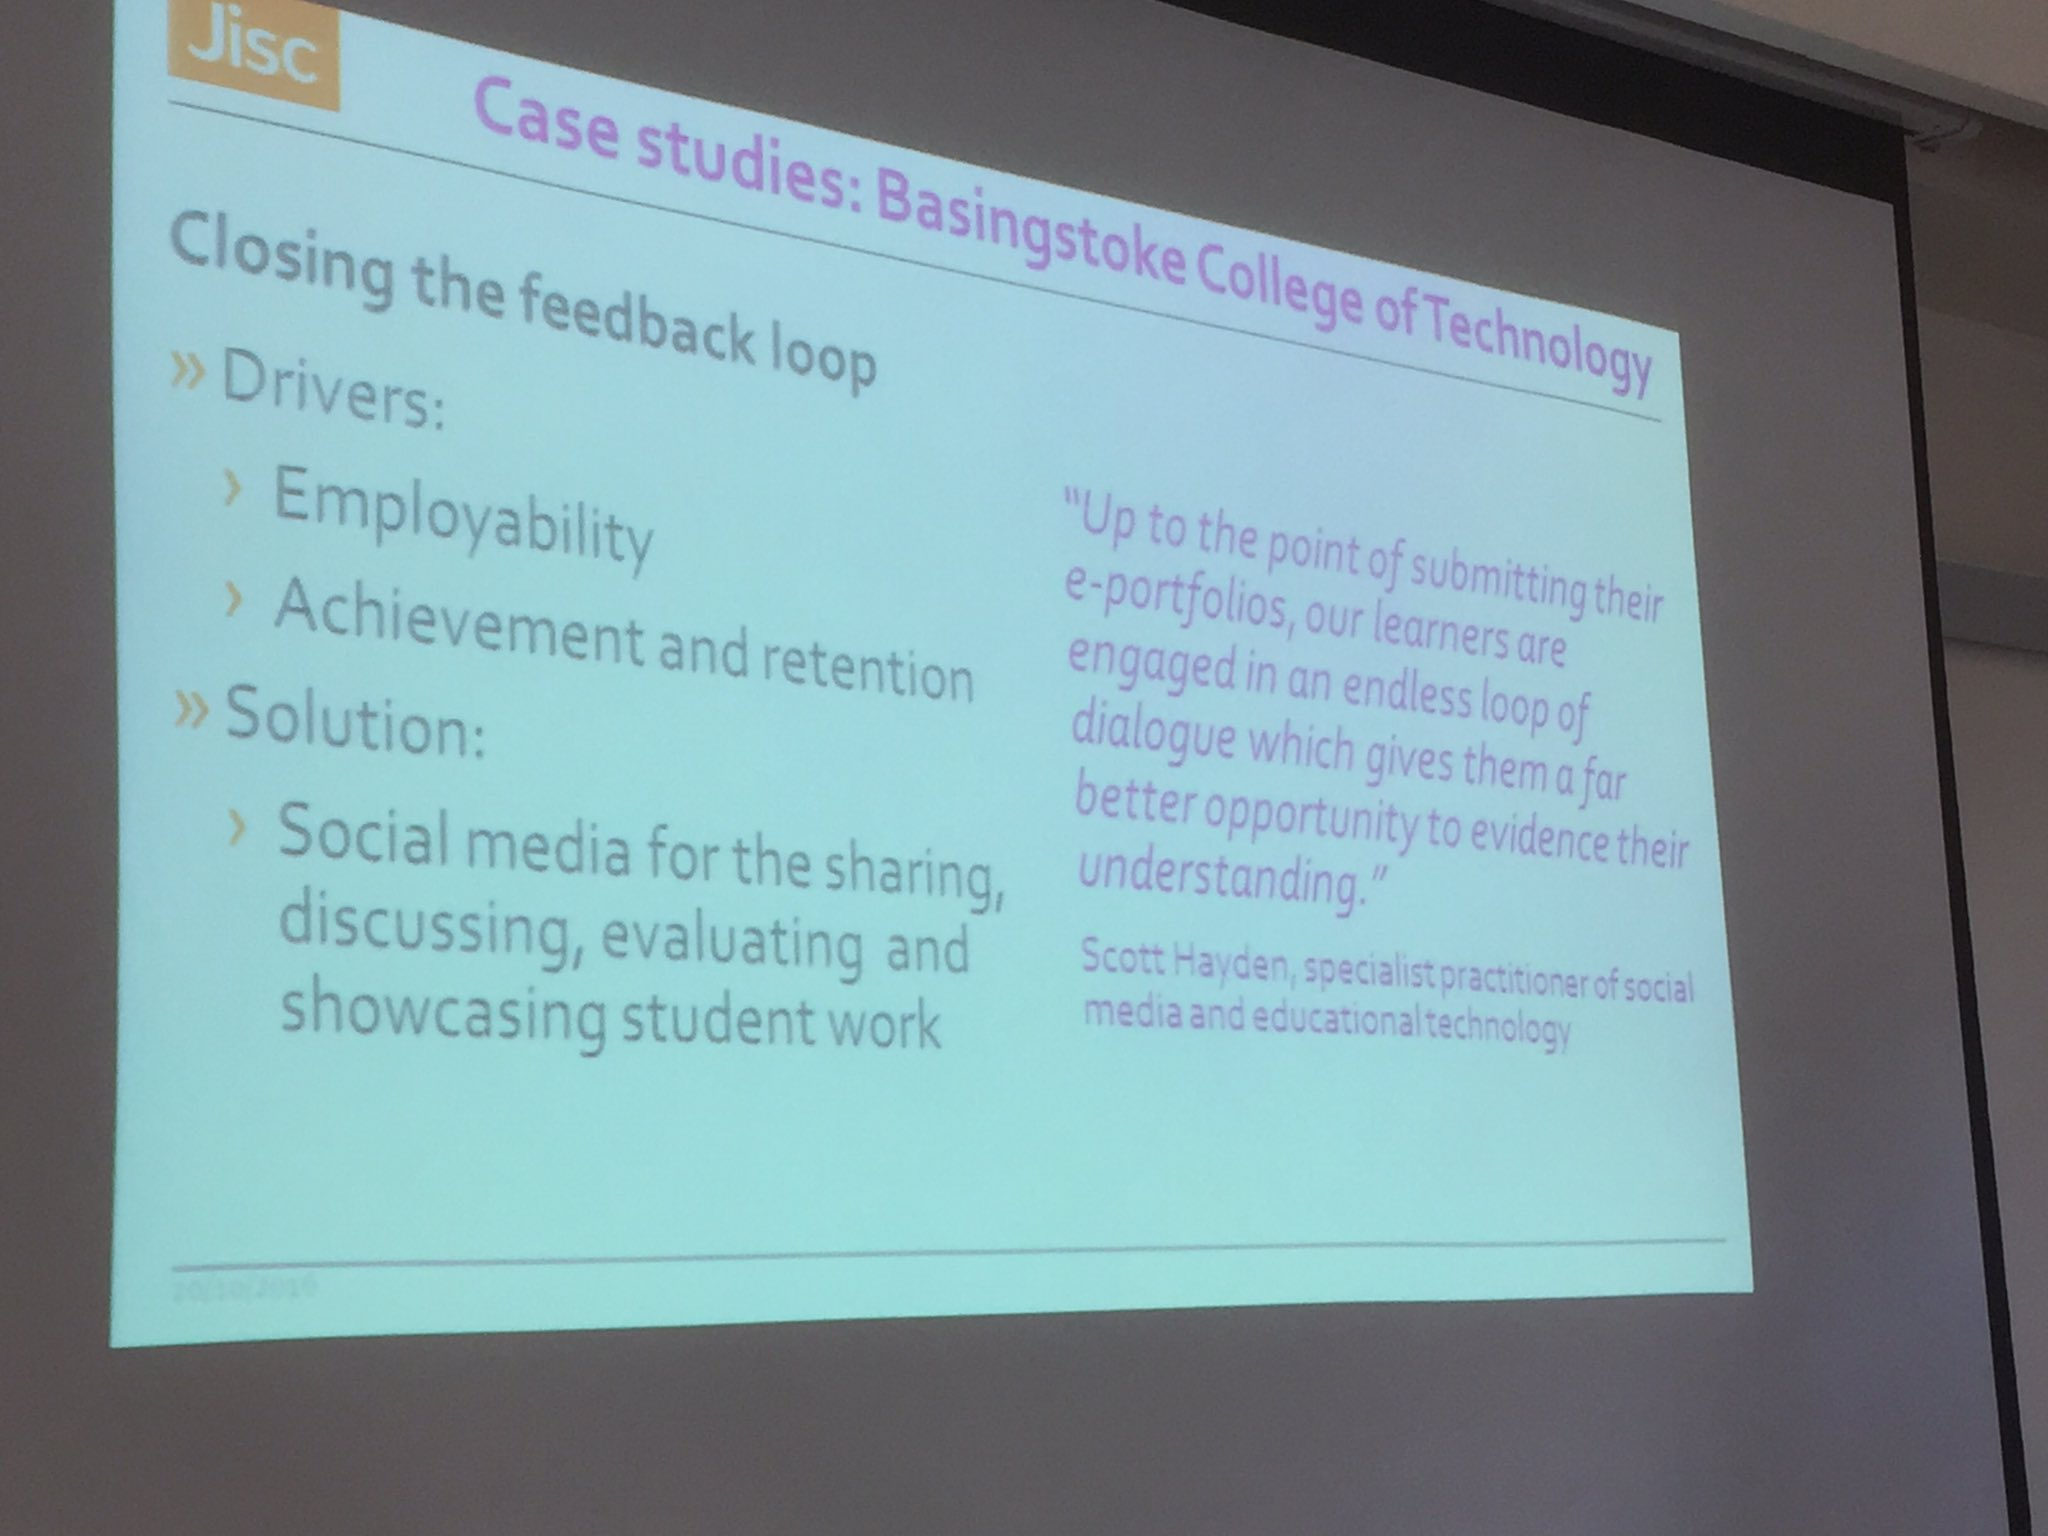 Case studies of effective assessment practice from @Jisc shout out to fab work from @bcotmedia #feltag https://t.co/2EjnEKg4jV